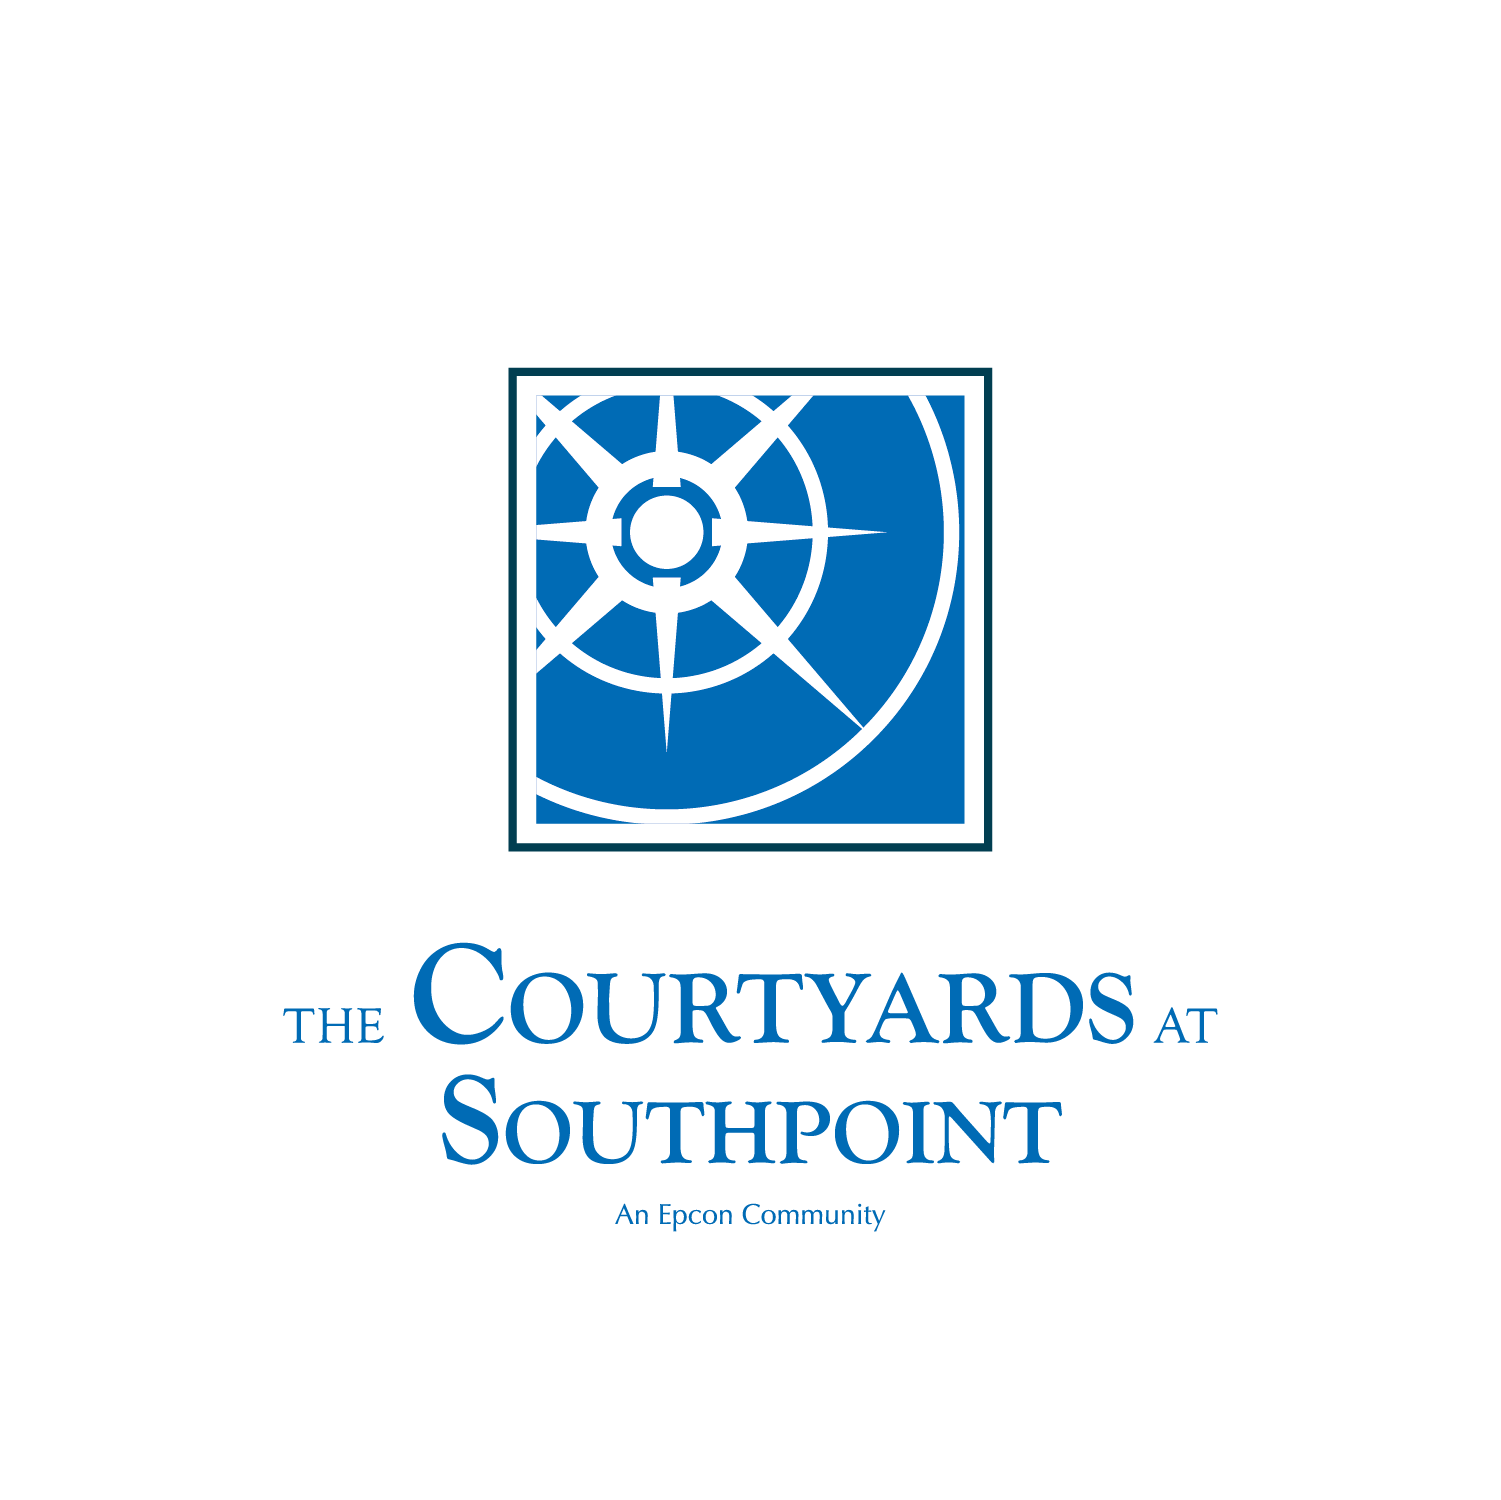 The Courtyards at Southpoint (1)